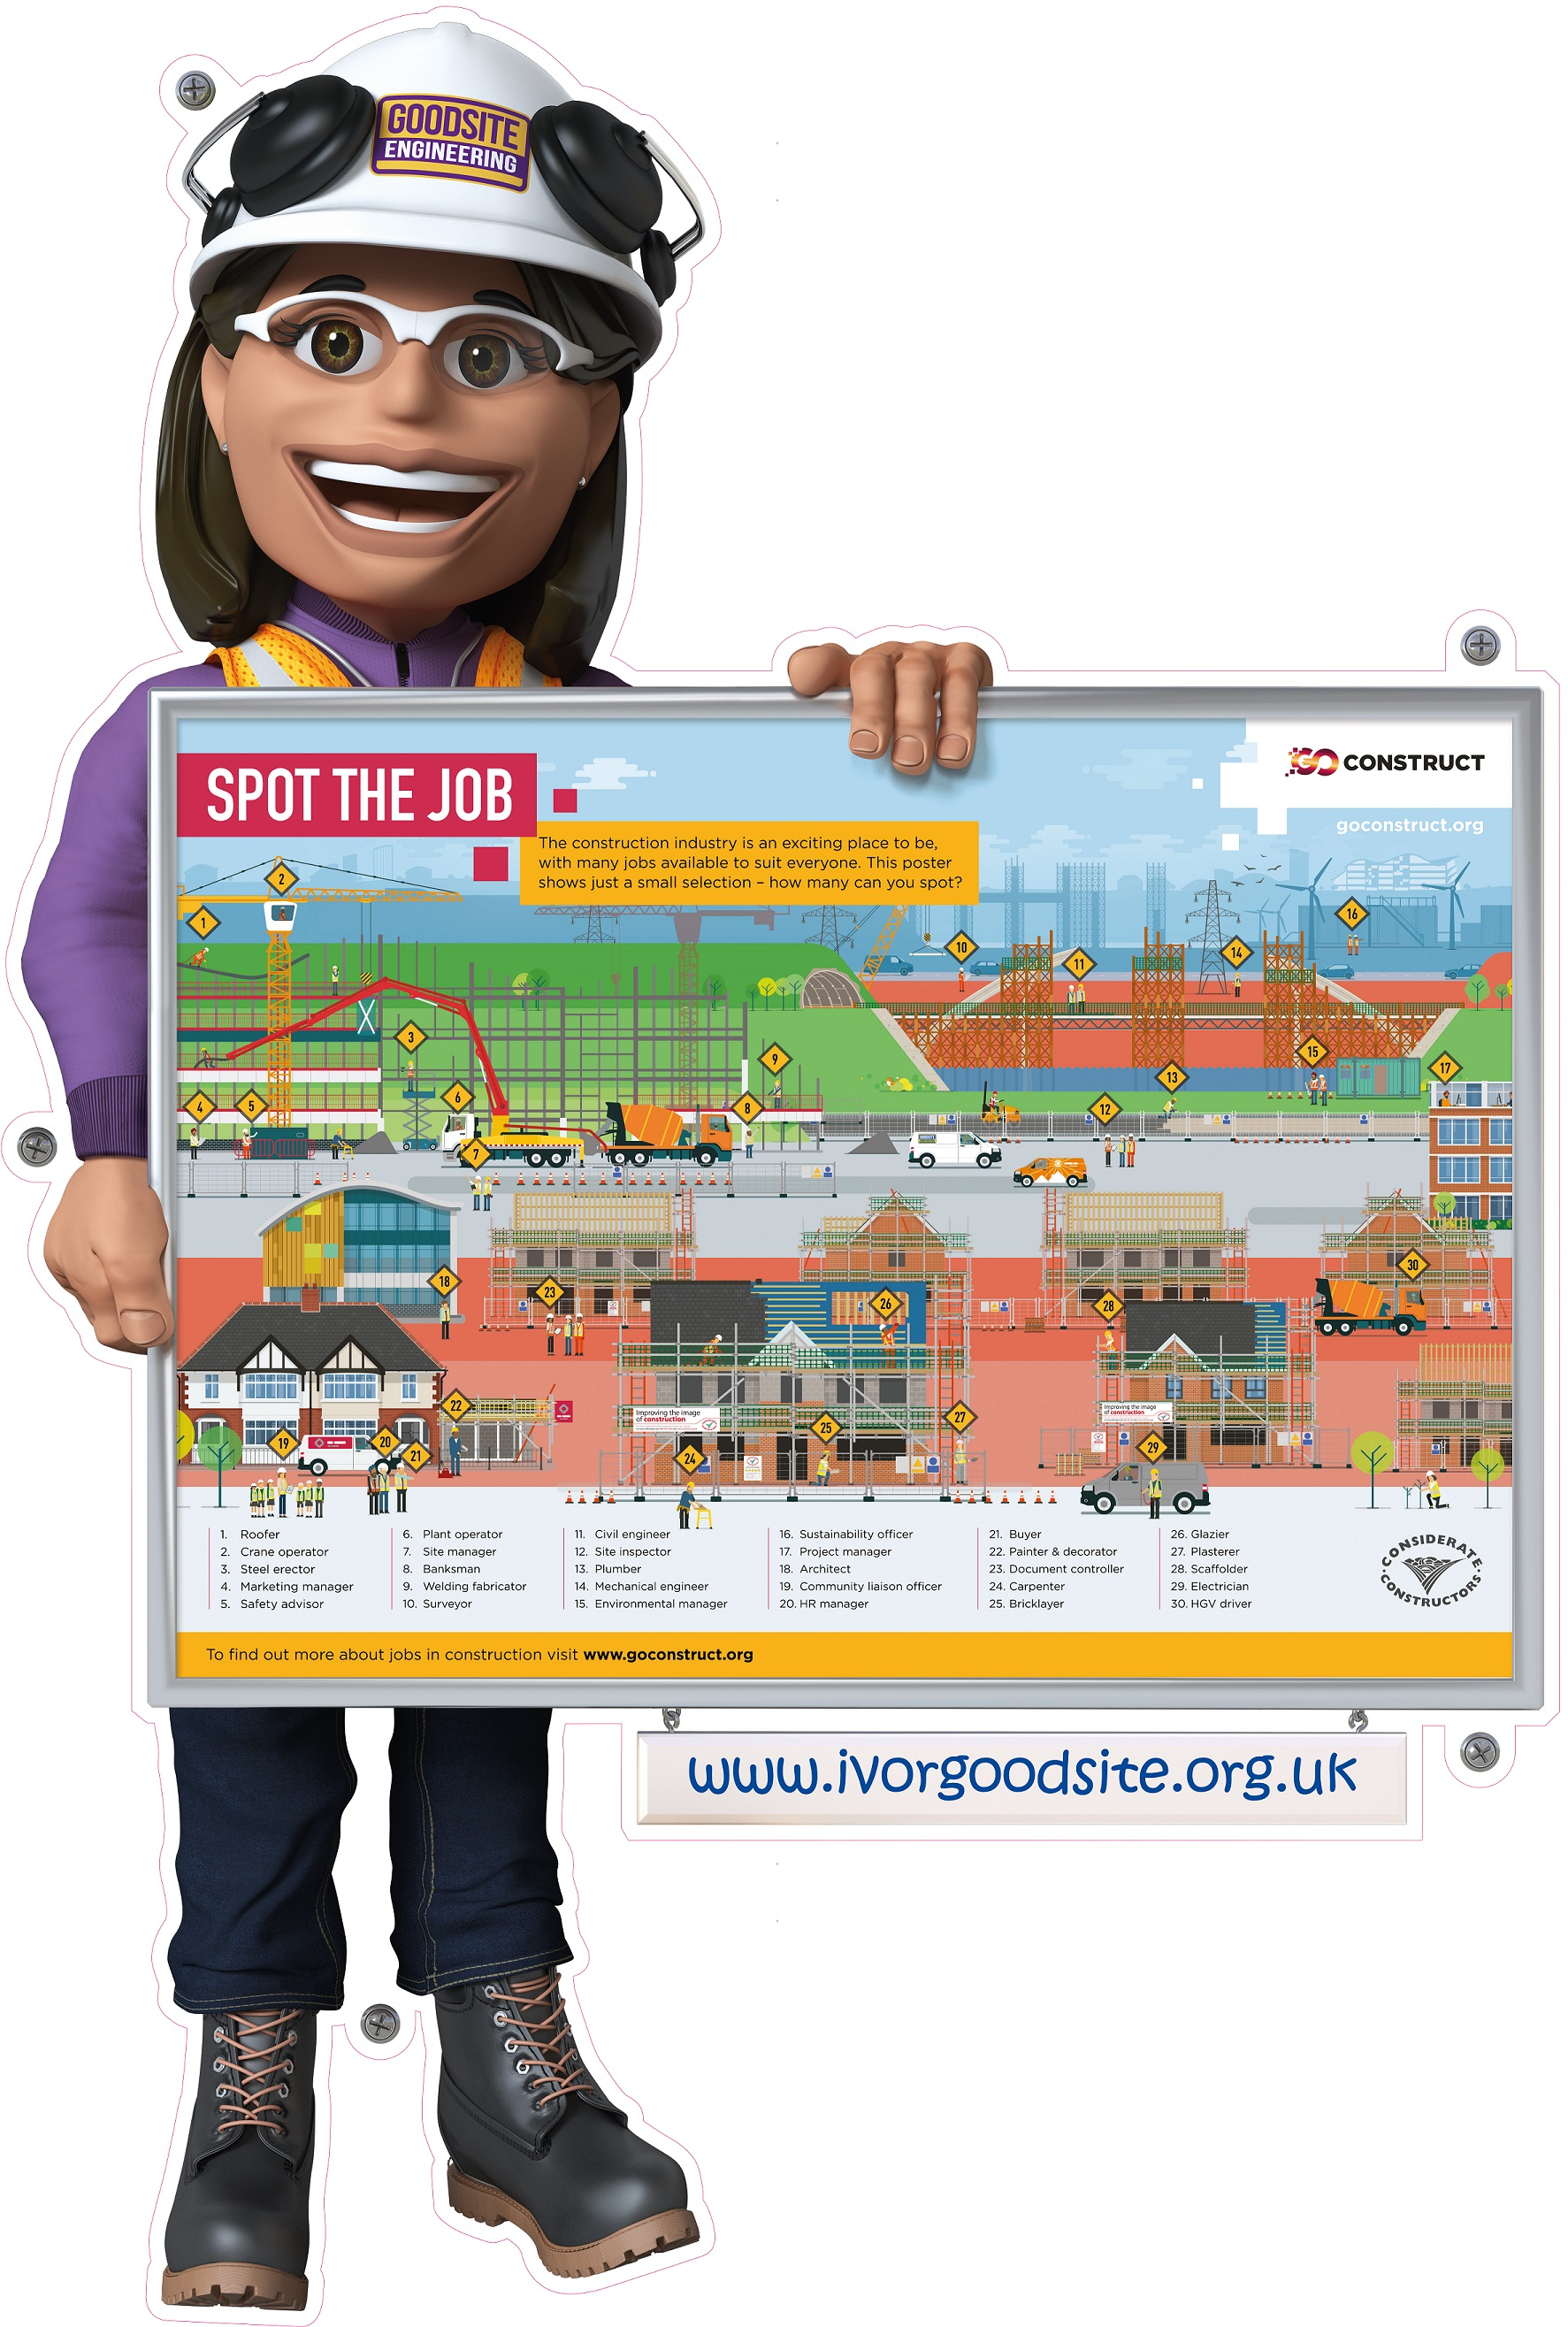 Spot The Job Sign Launched To Help Young People Identify Careers In Construction Ivor Goodsite